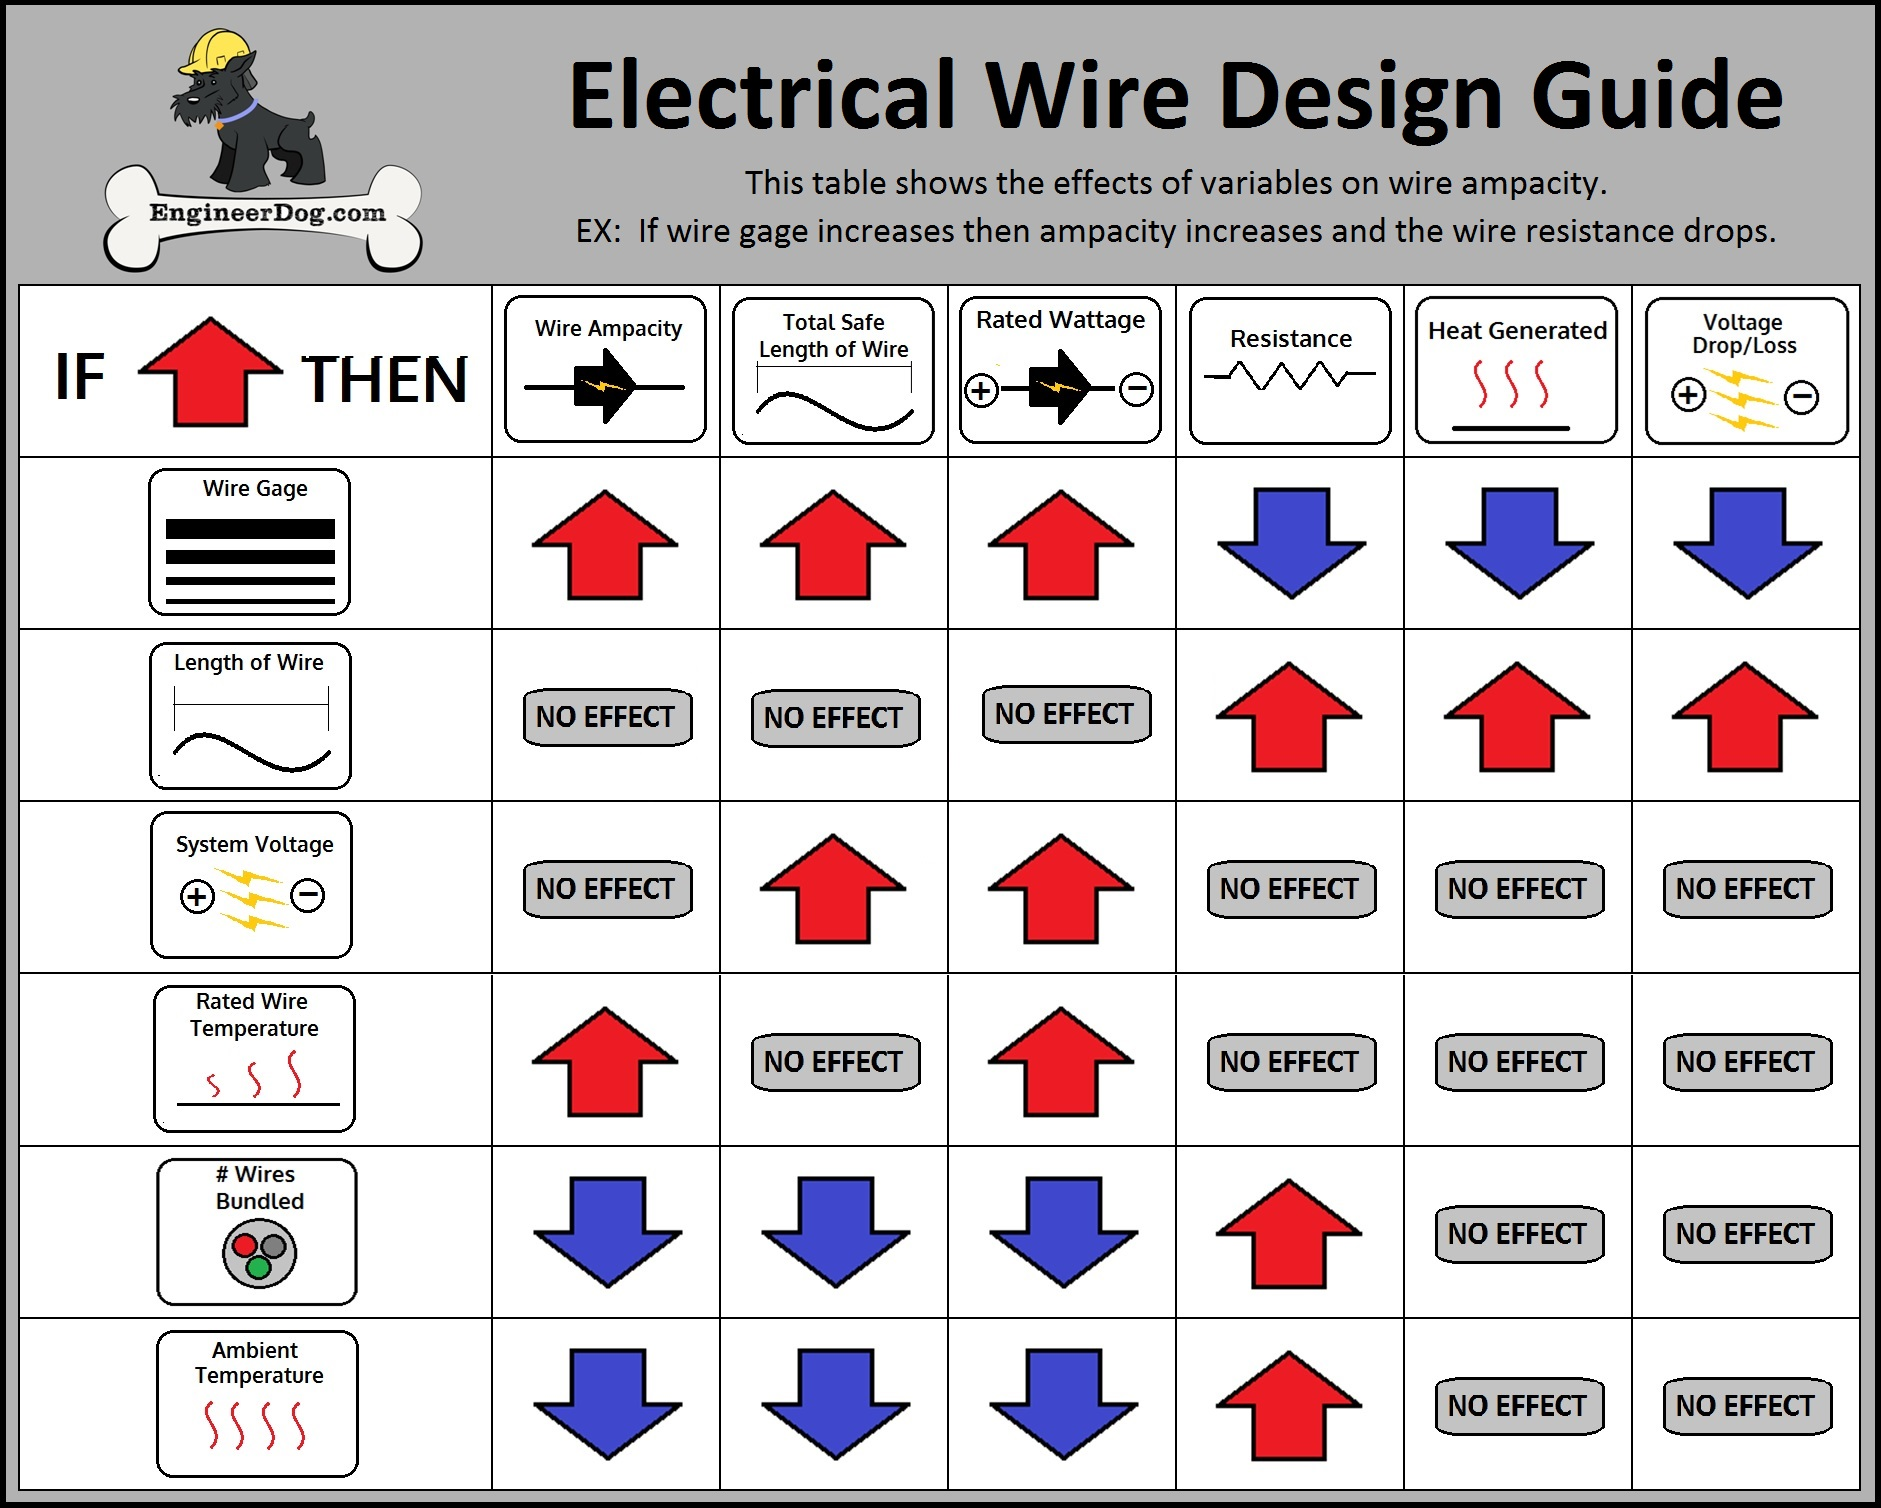 Electrical wiring size chart auto electrical wiring diagram free electrical wire gauge sizing calculator engineerdog rh engineerdog com size chart for electrical wiring electrical service wire size chart greentooth Images